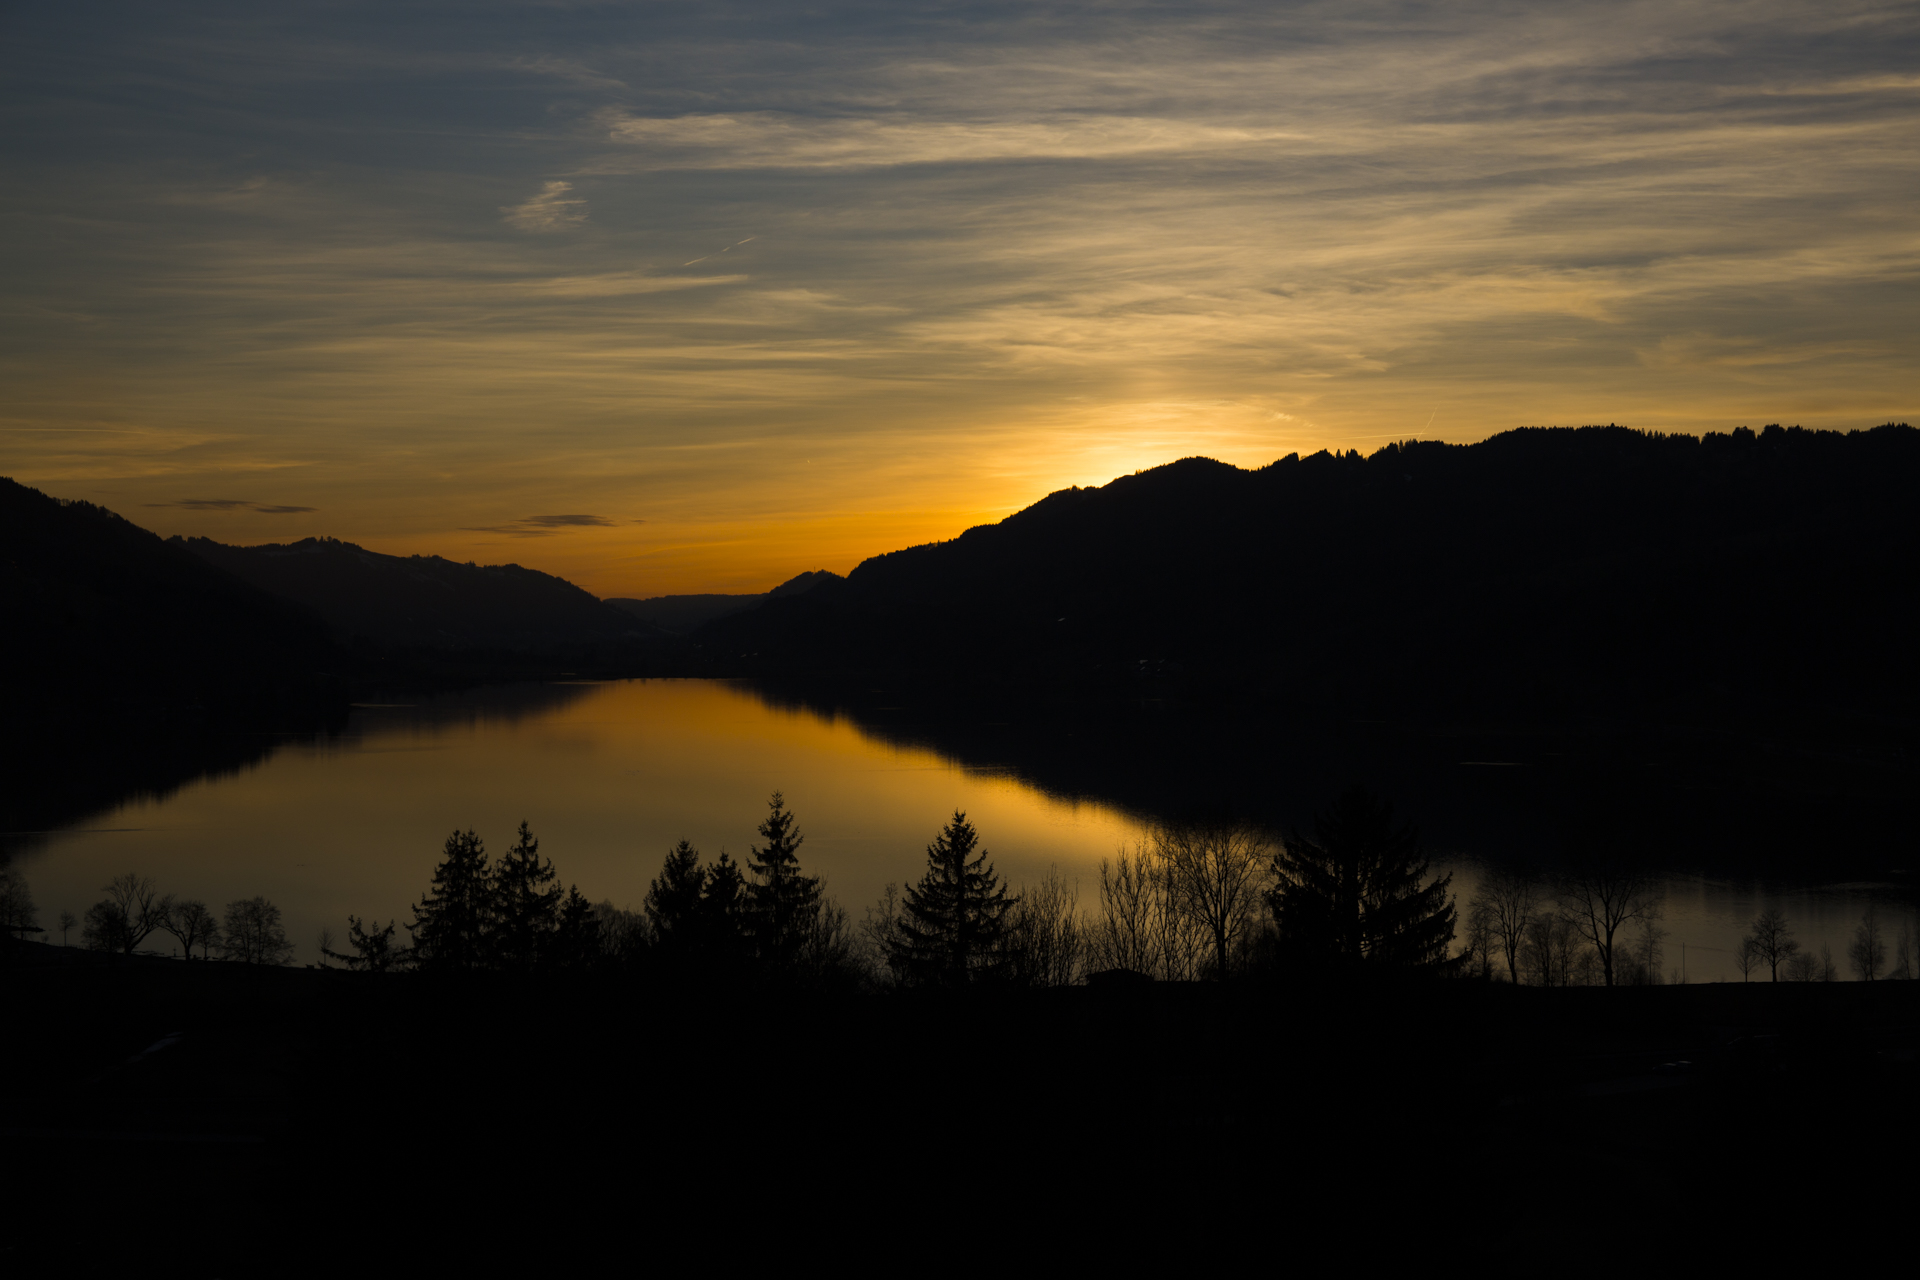 sonnenuntergang location am alpsee